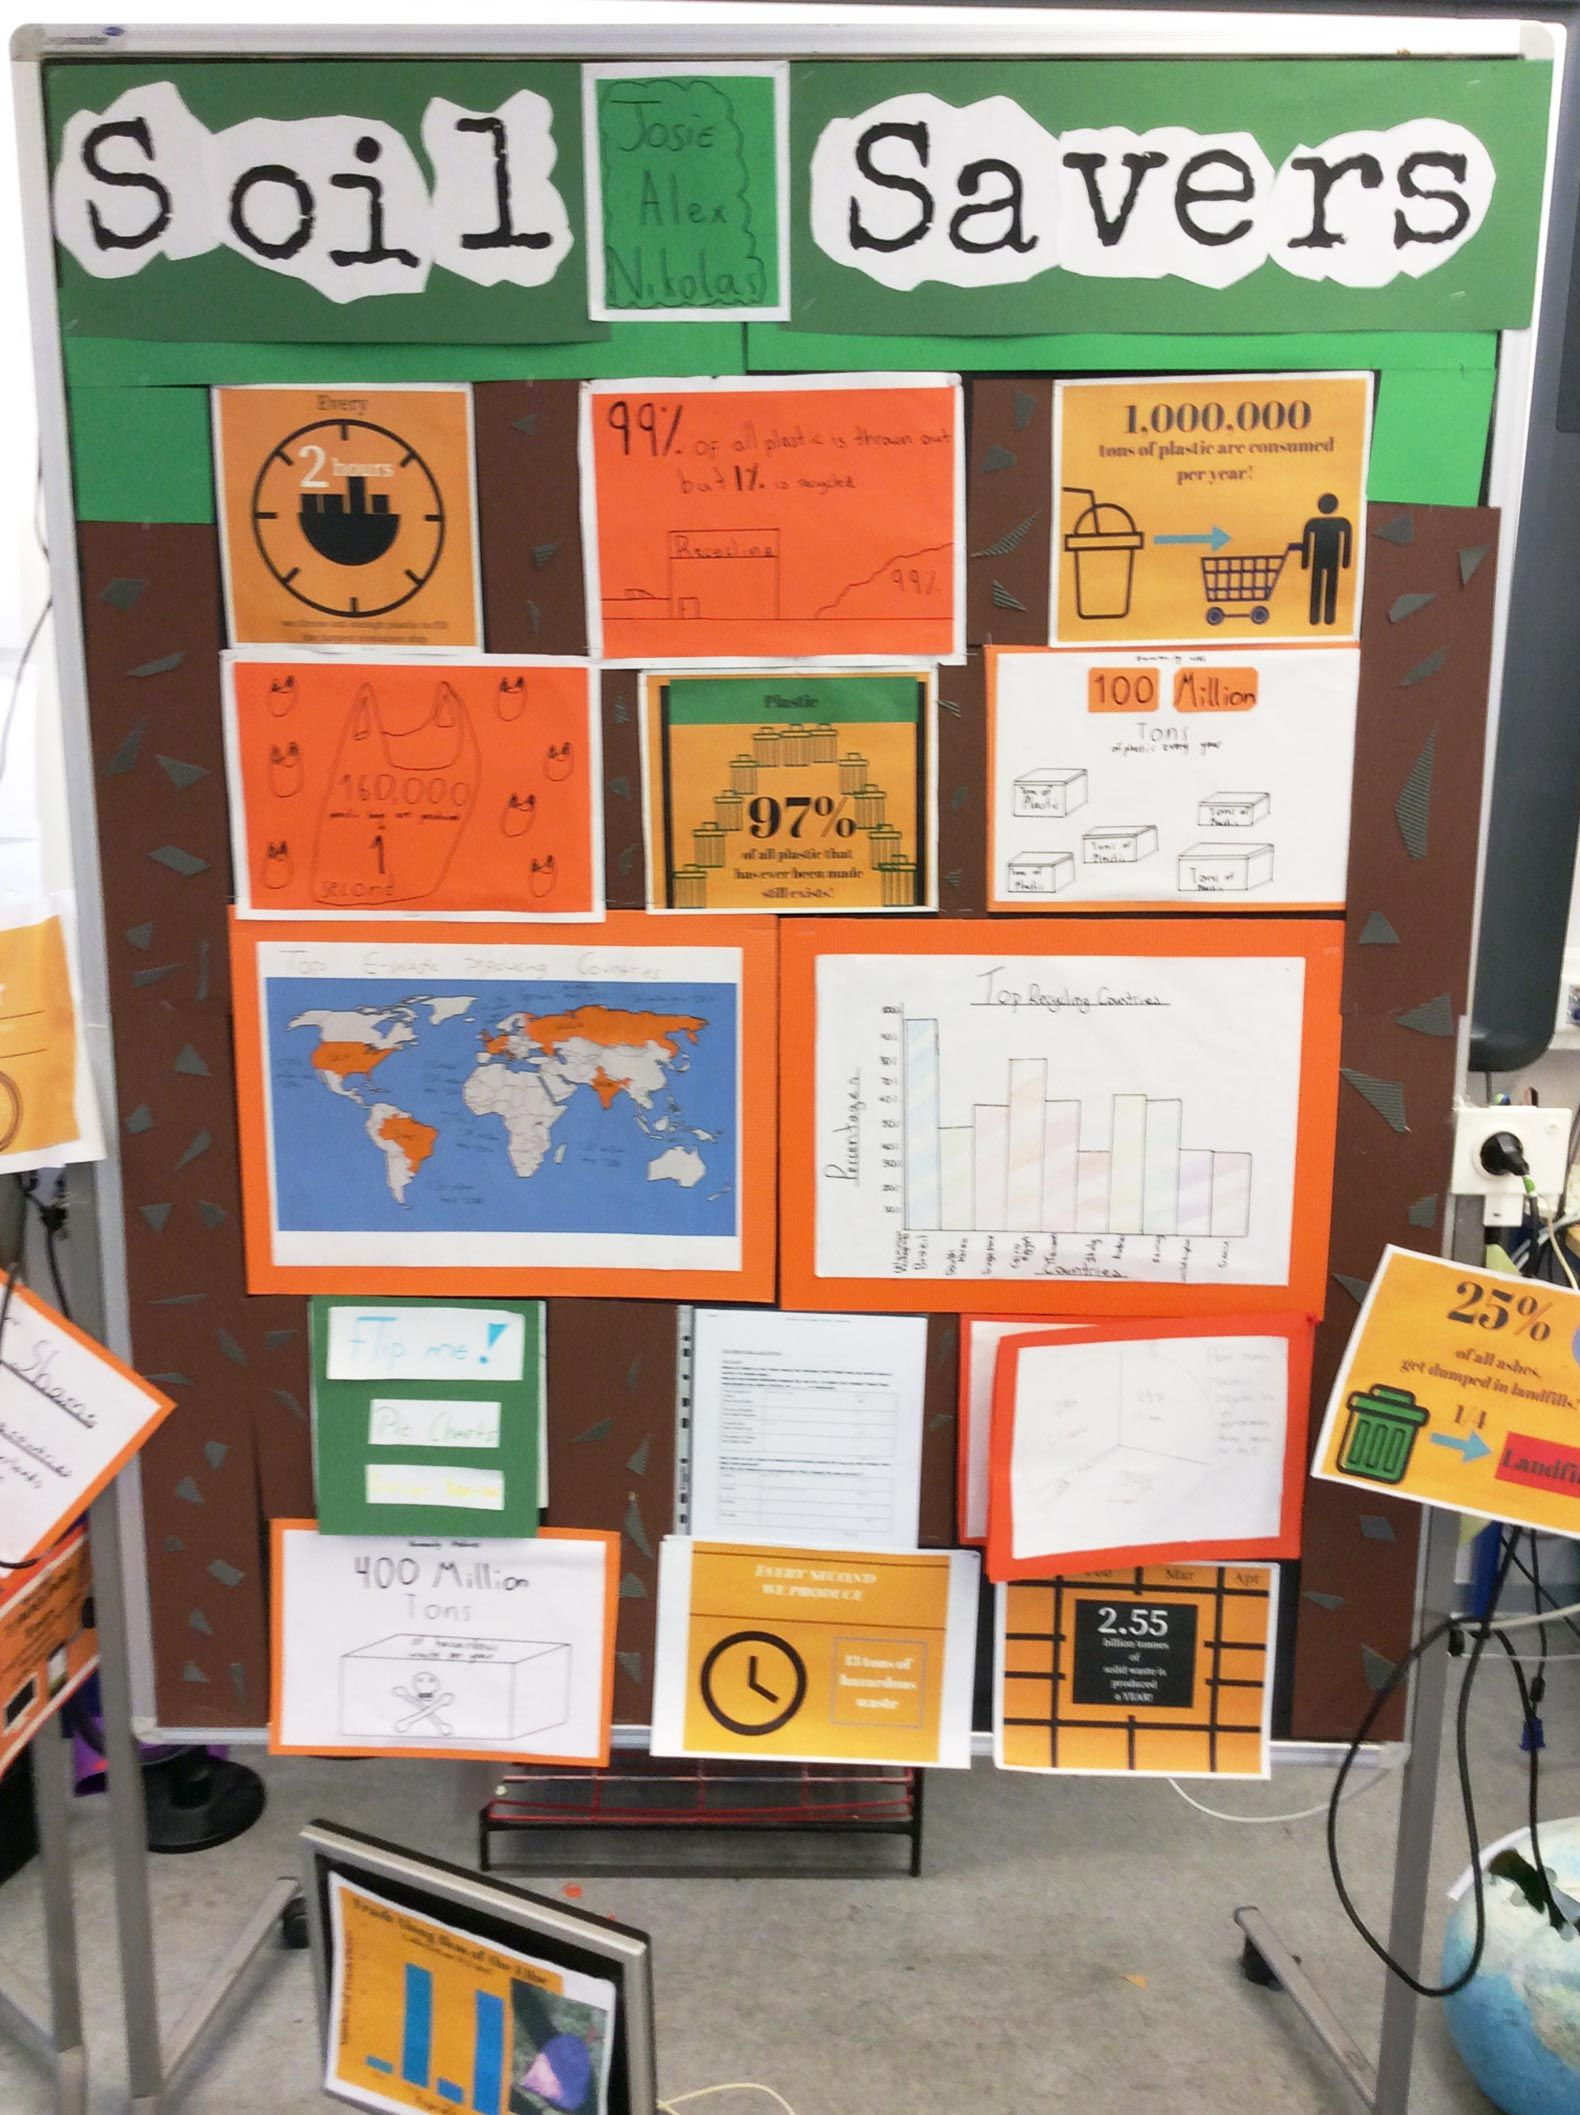 The author's fifth graders were required to produce visual displays of their learning.